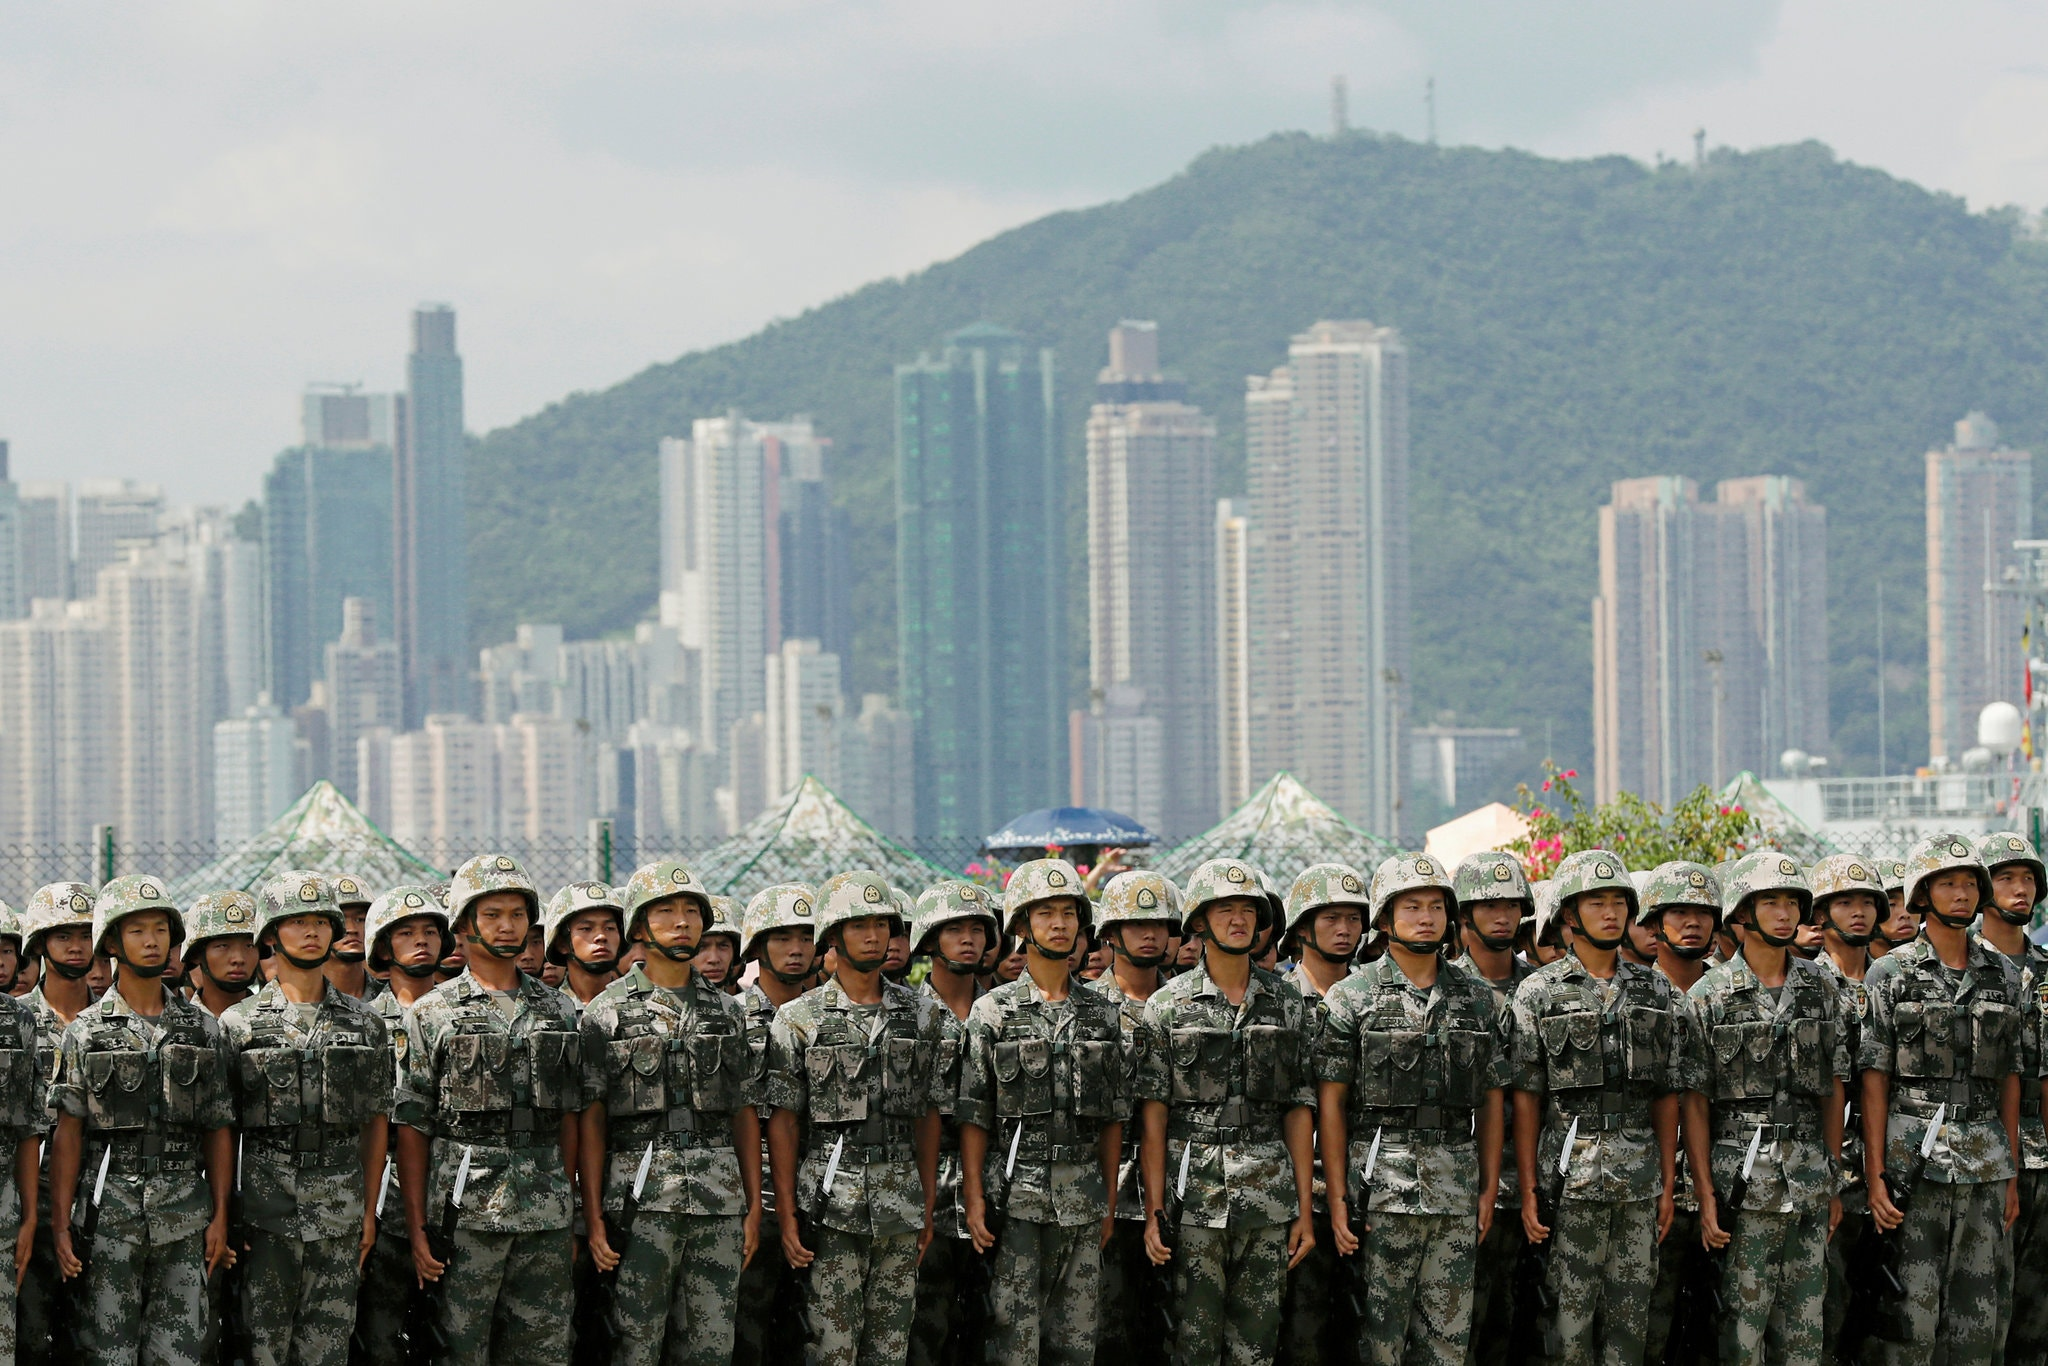 People's Liberation Army soldiers at Stonecutters Island naval base in Hong Kong last month. China warned that it could mobilize Chinese troops to maintain order in Hong Kong. Credit Tyrone Siu/Reuters